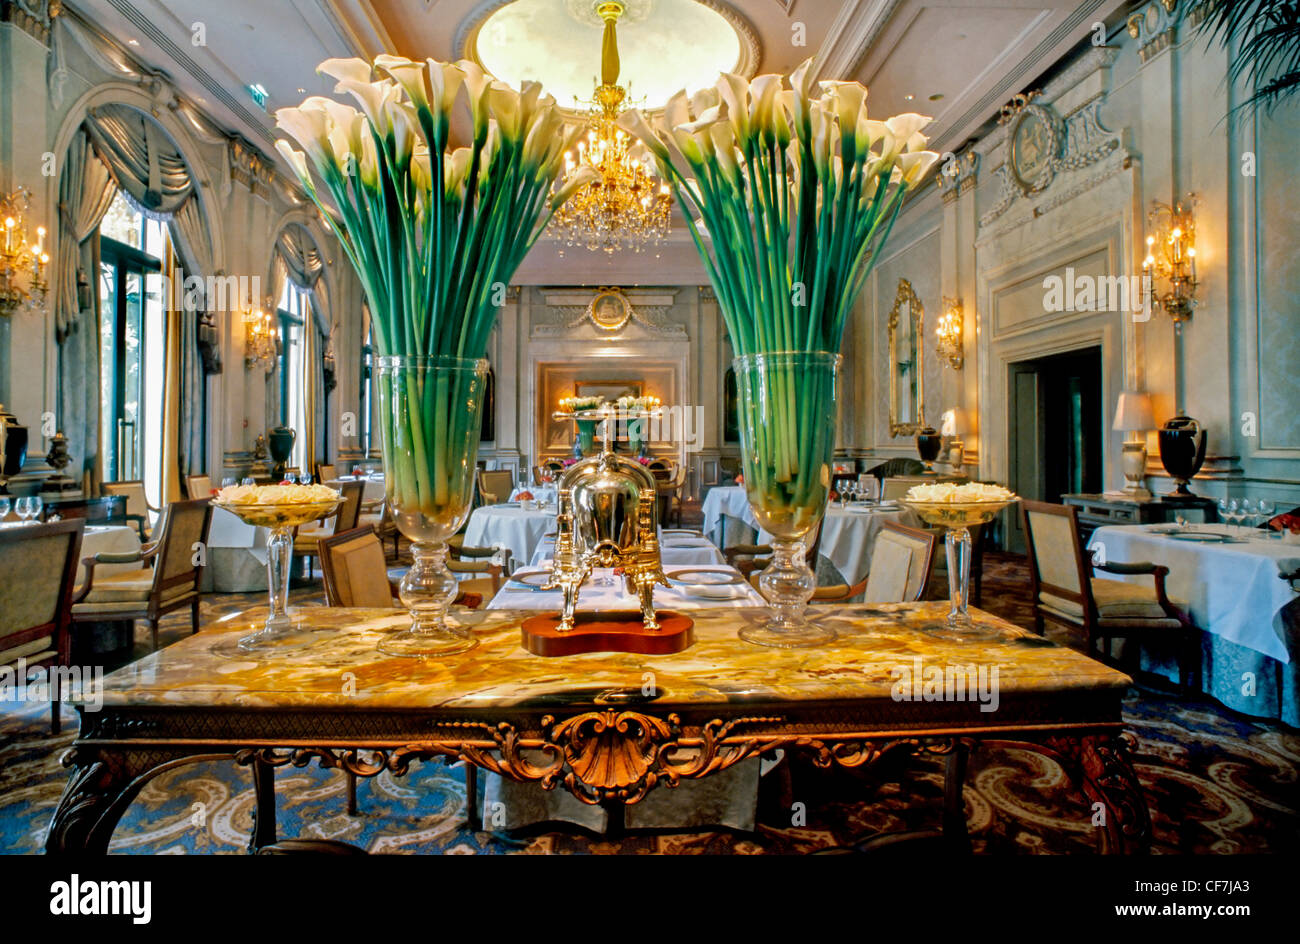 France paris fancy french restaurant interior decor le